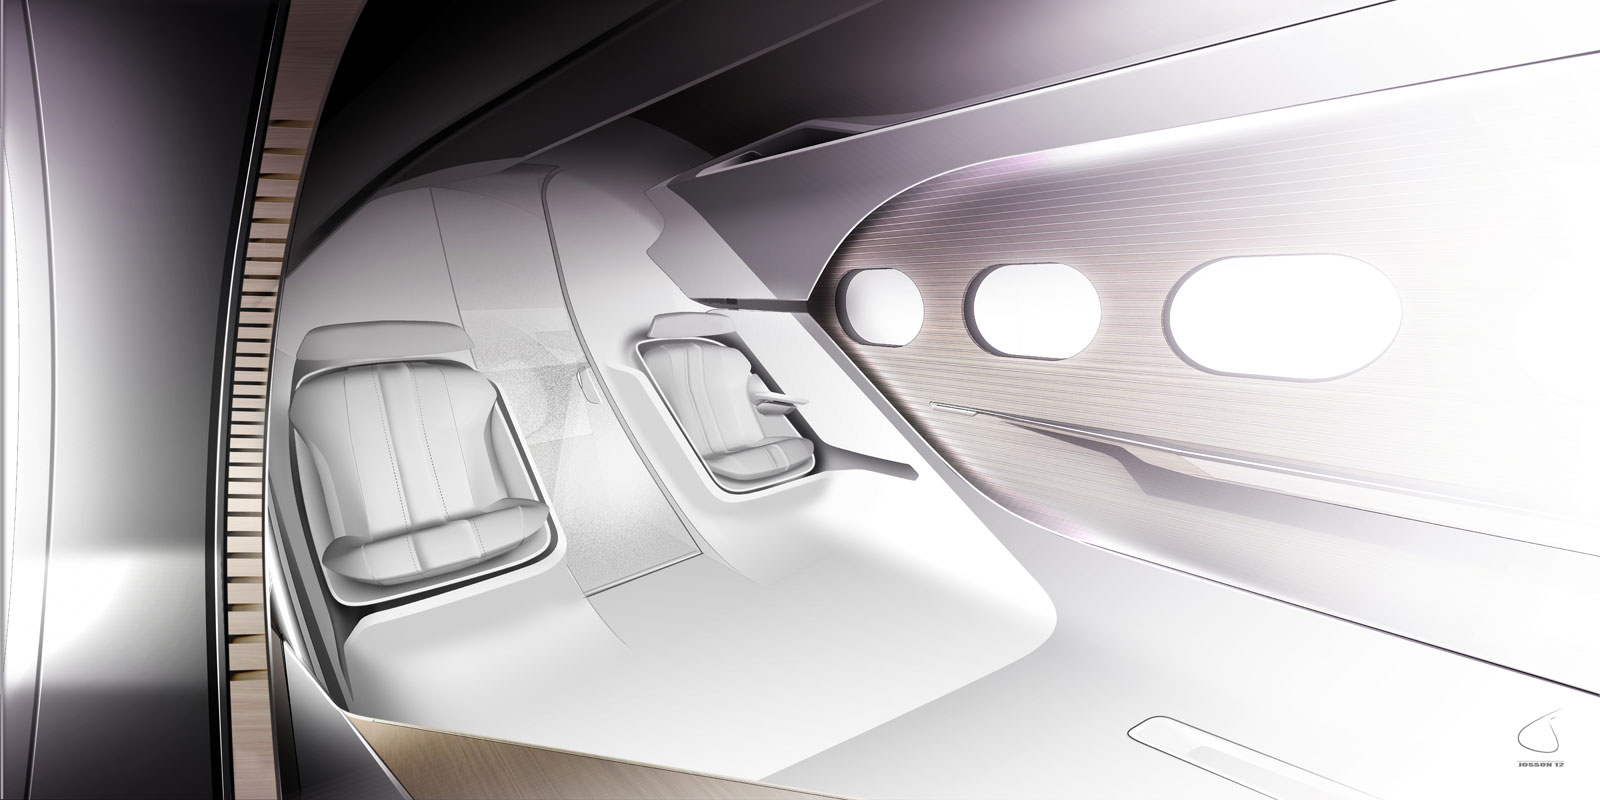 The New HX1 Business Jet Concept By Peugeot Design Labs